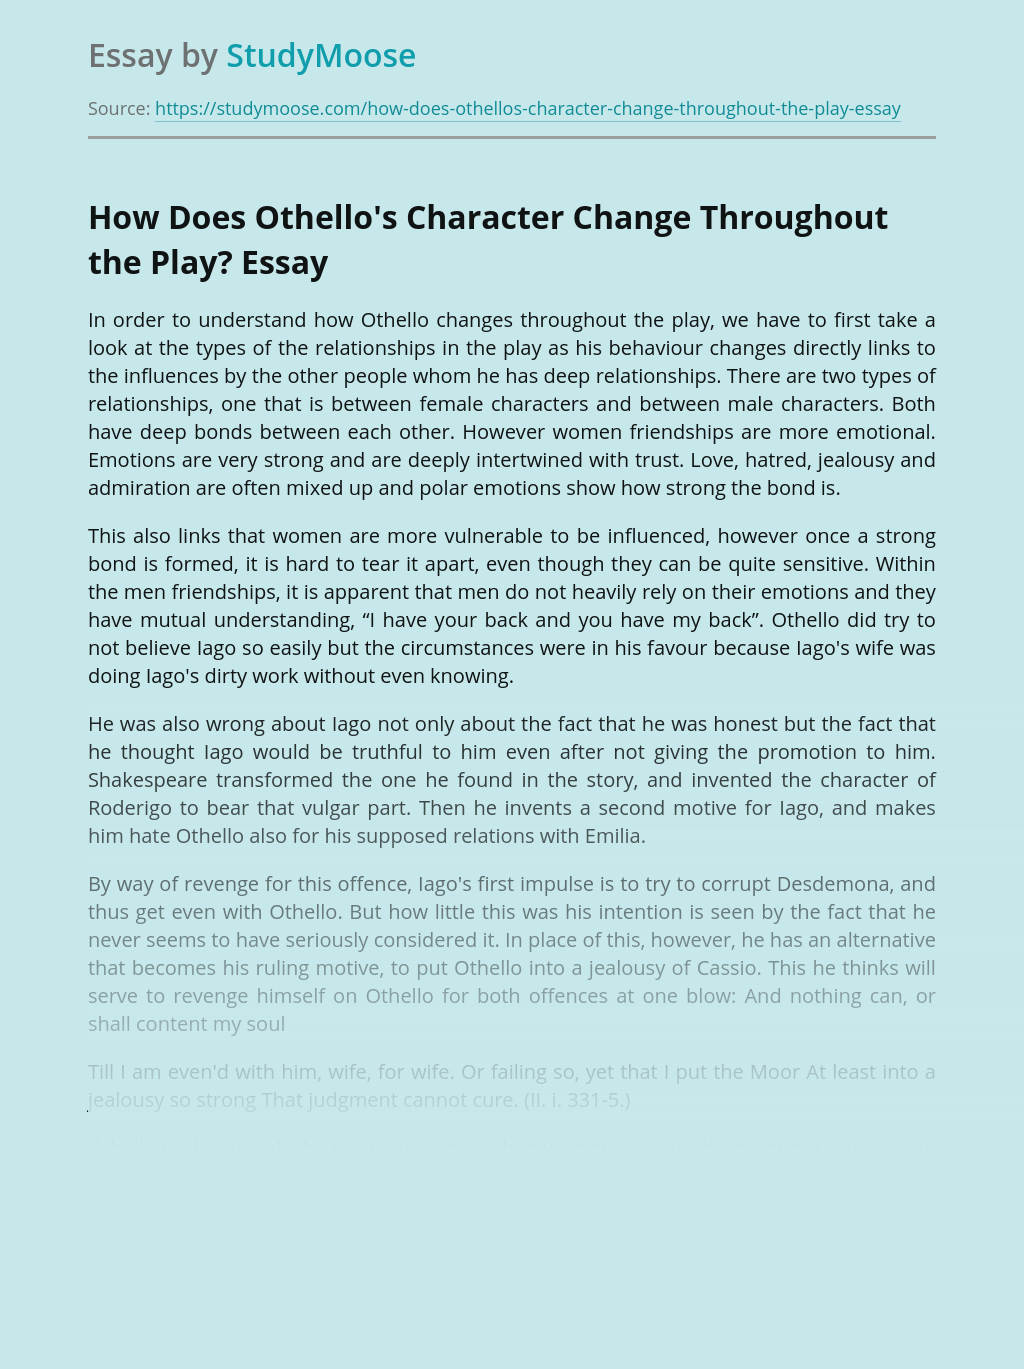 How Does Othello's Character Change Throughout the Play?